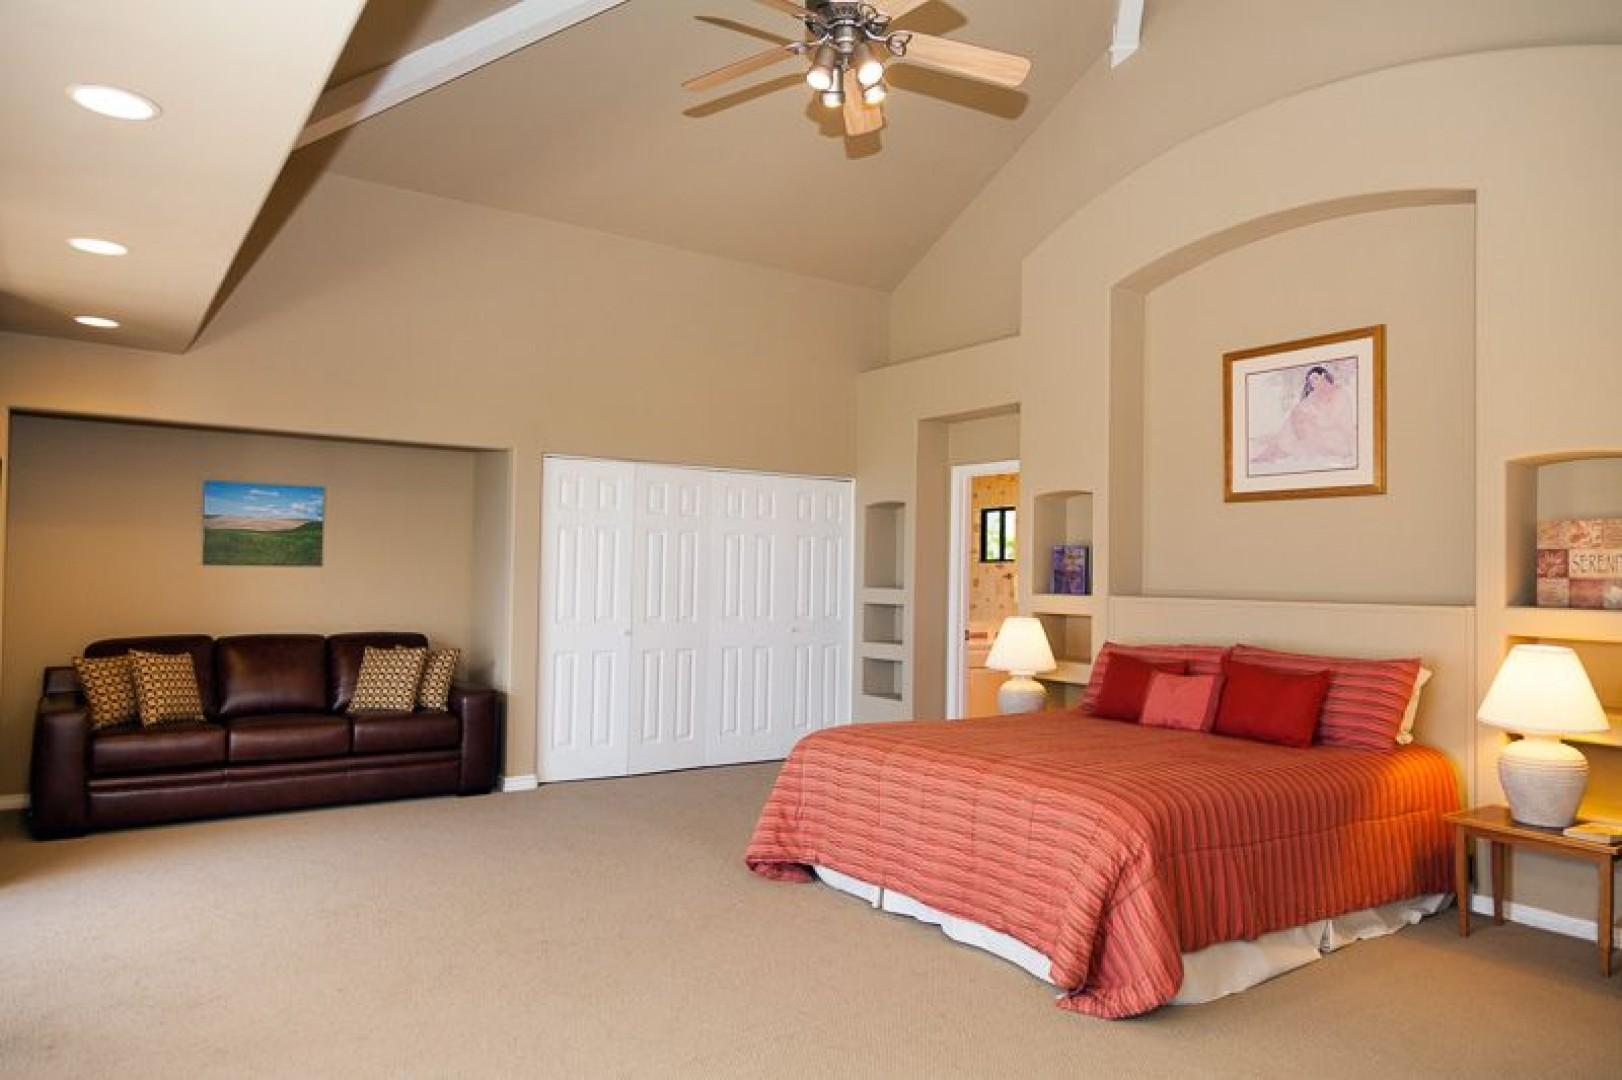 North Master Suite with a King bed and queen size sofa bed